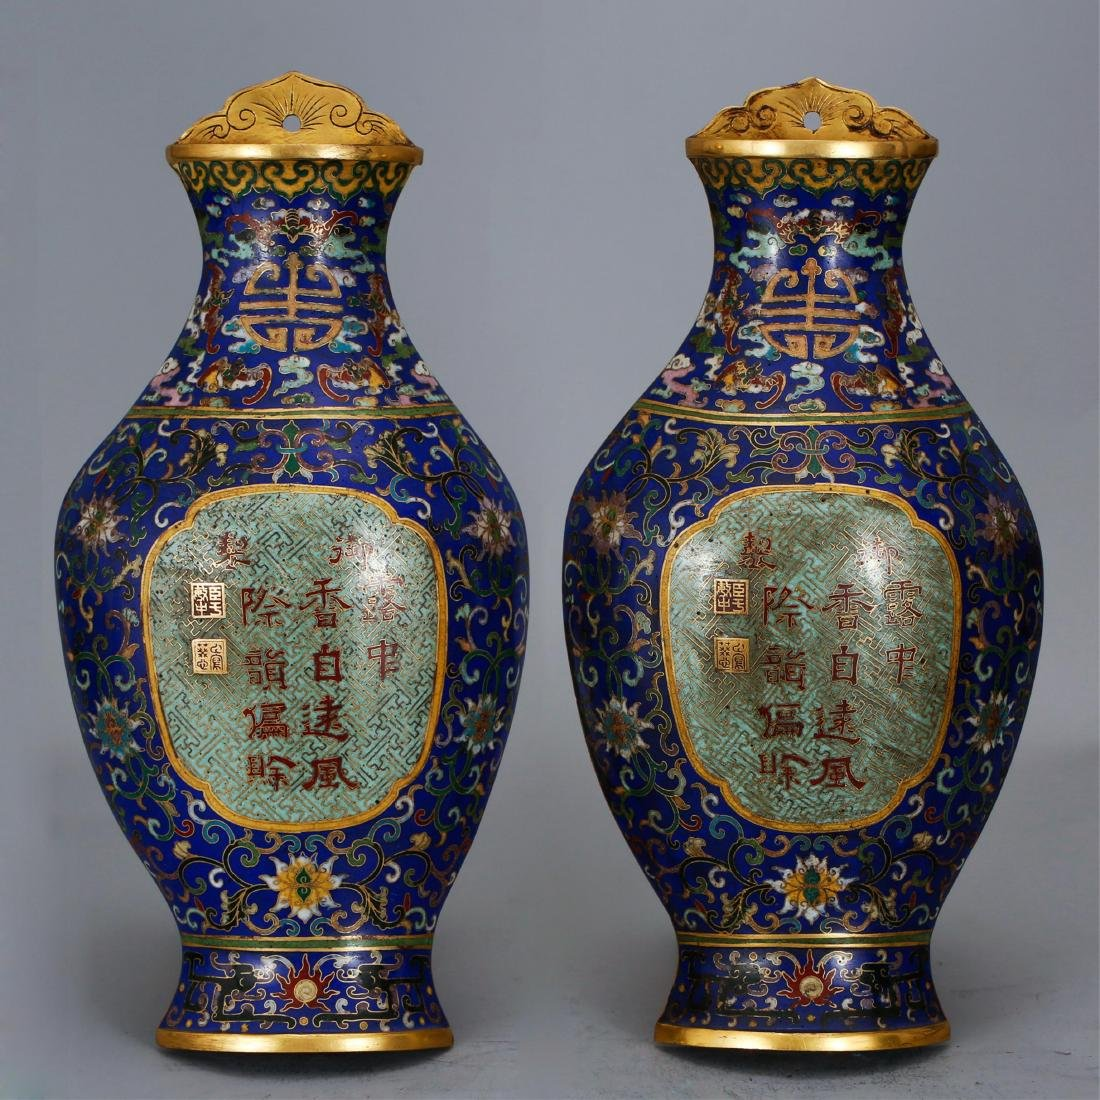 PAIR OF CHINESE CLOISONNE WALL VASES